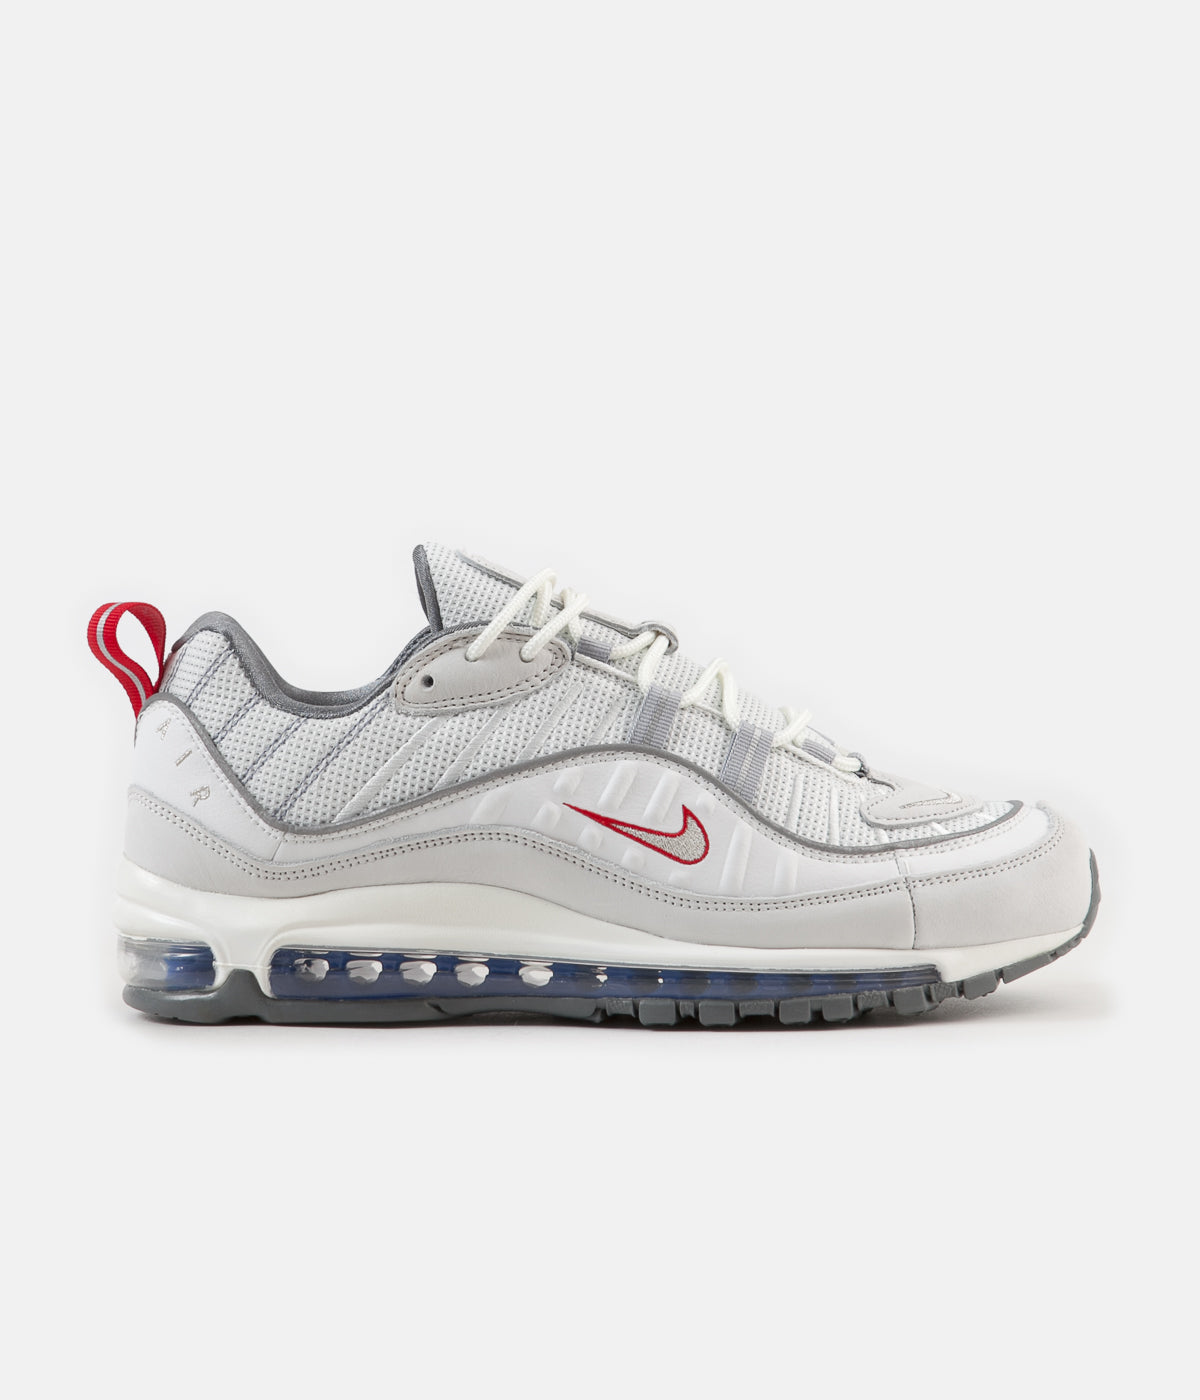 db14df3a1346 ... Nike Air Max 98 Shoes - Summit White   Metallic Silver ...